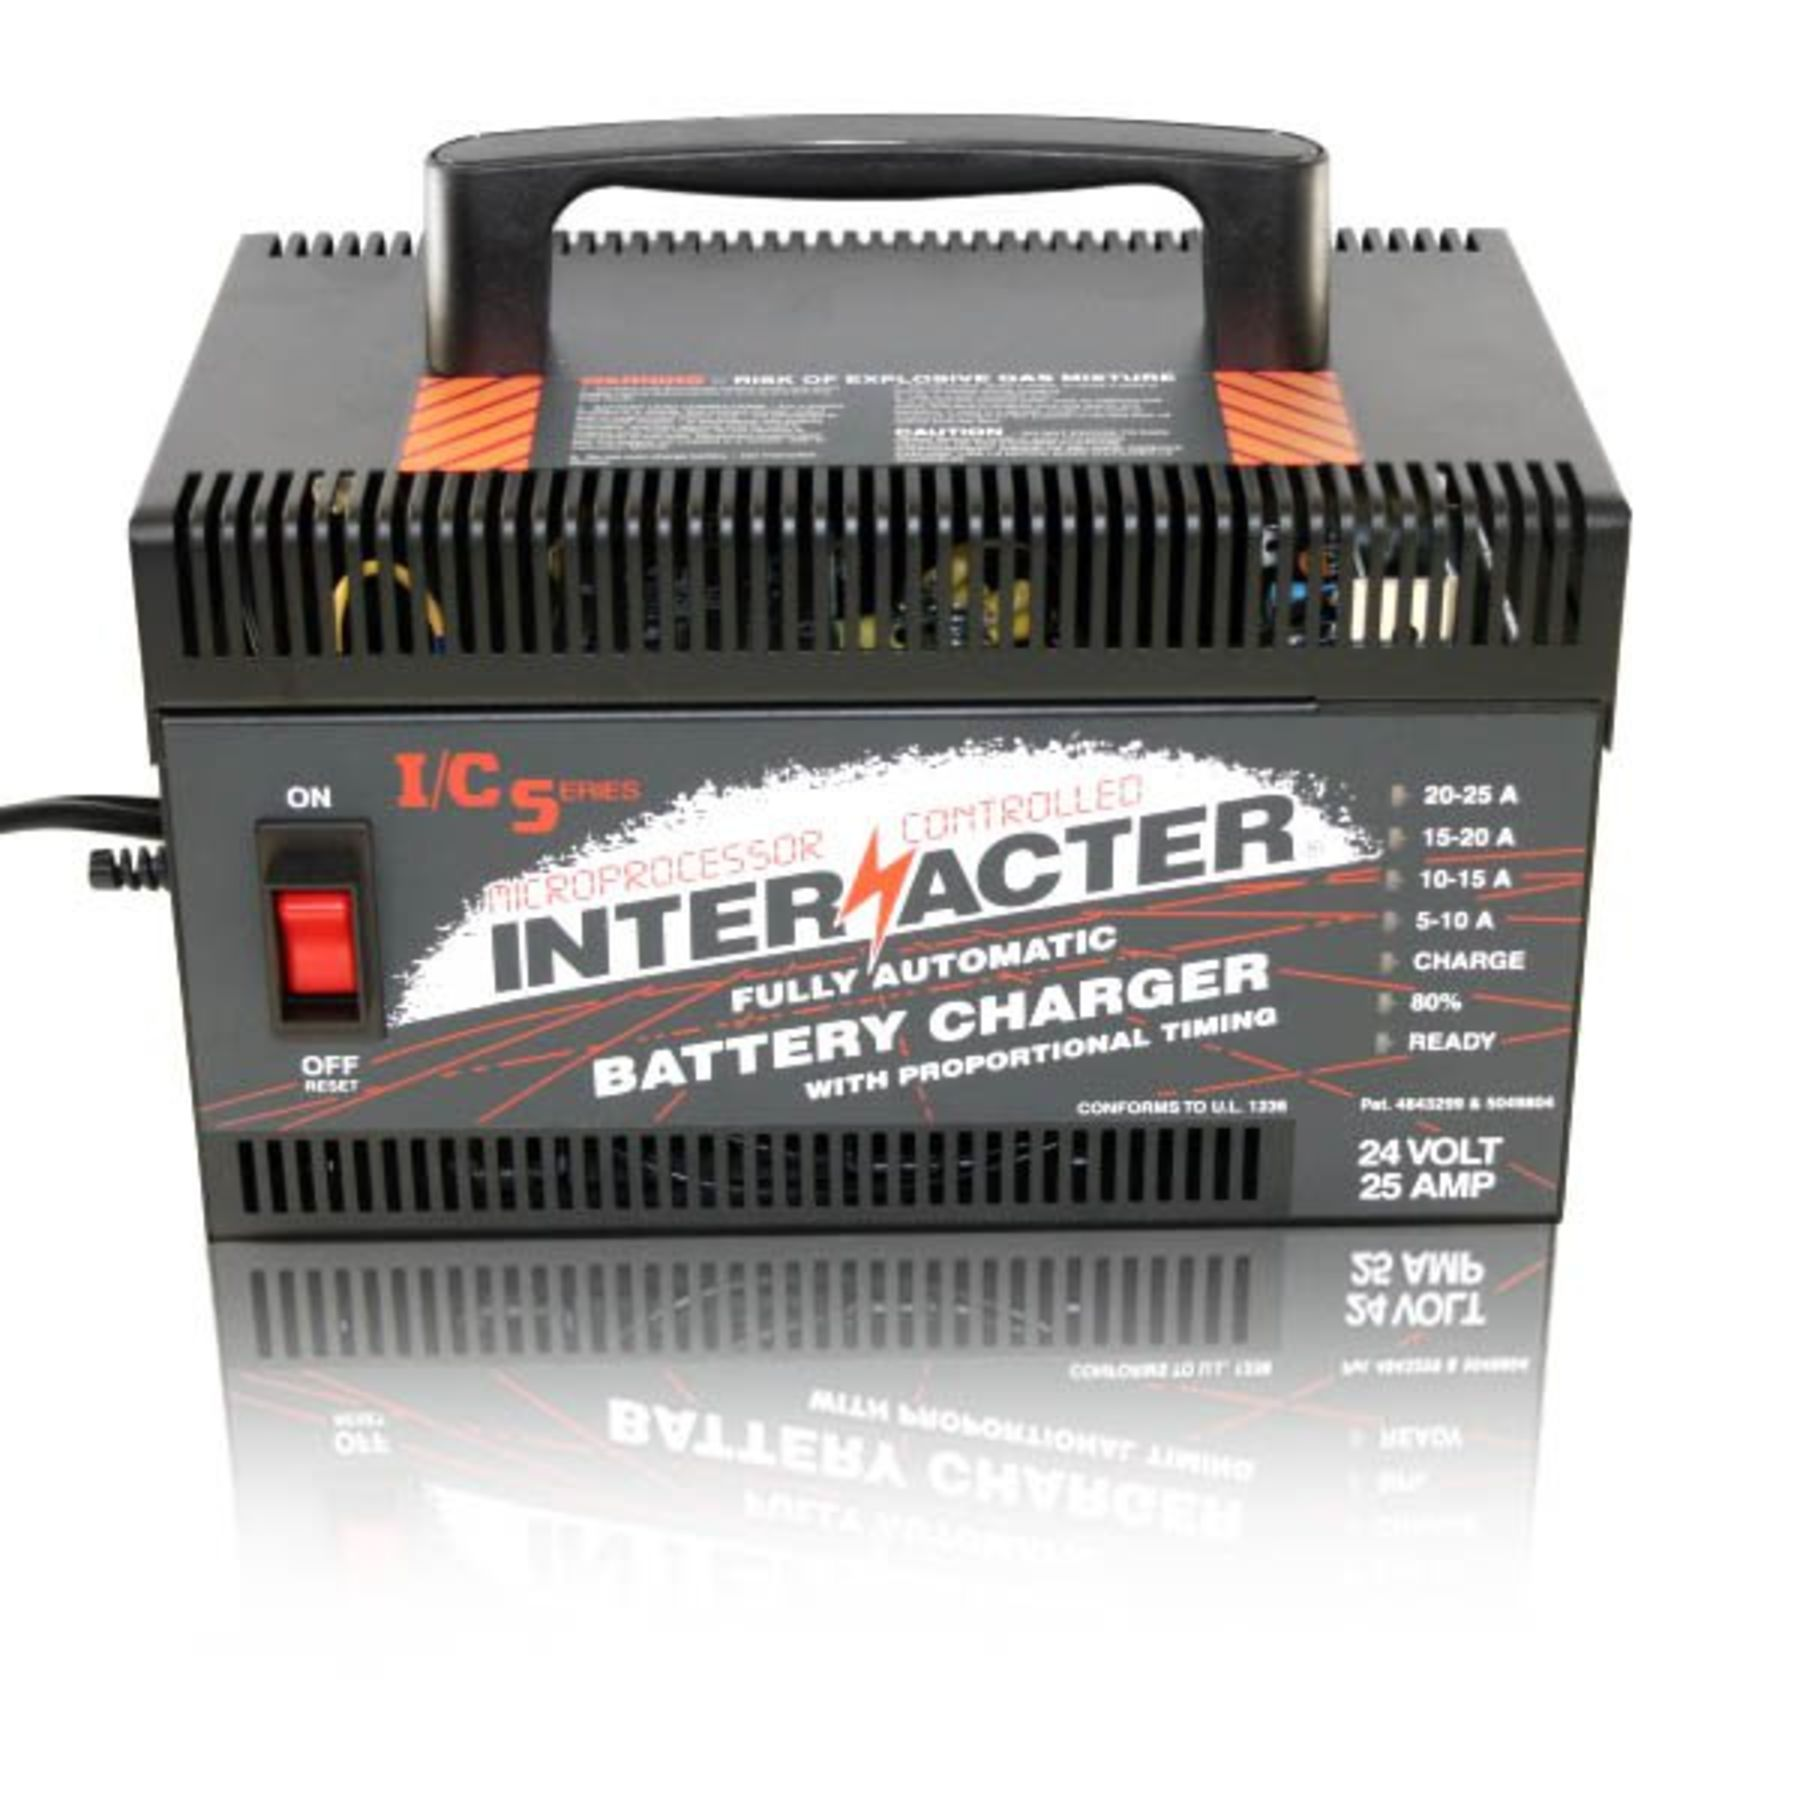 Interacter Industrial Commercial Series Charger Ics2425 Make A 25 Amp Solar Battery Power Supply Circuit Schematics